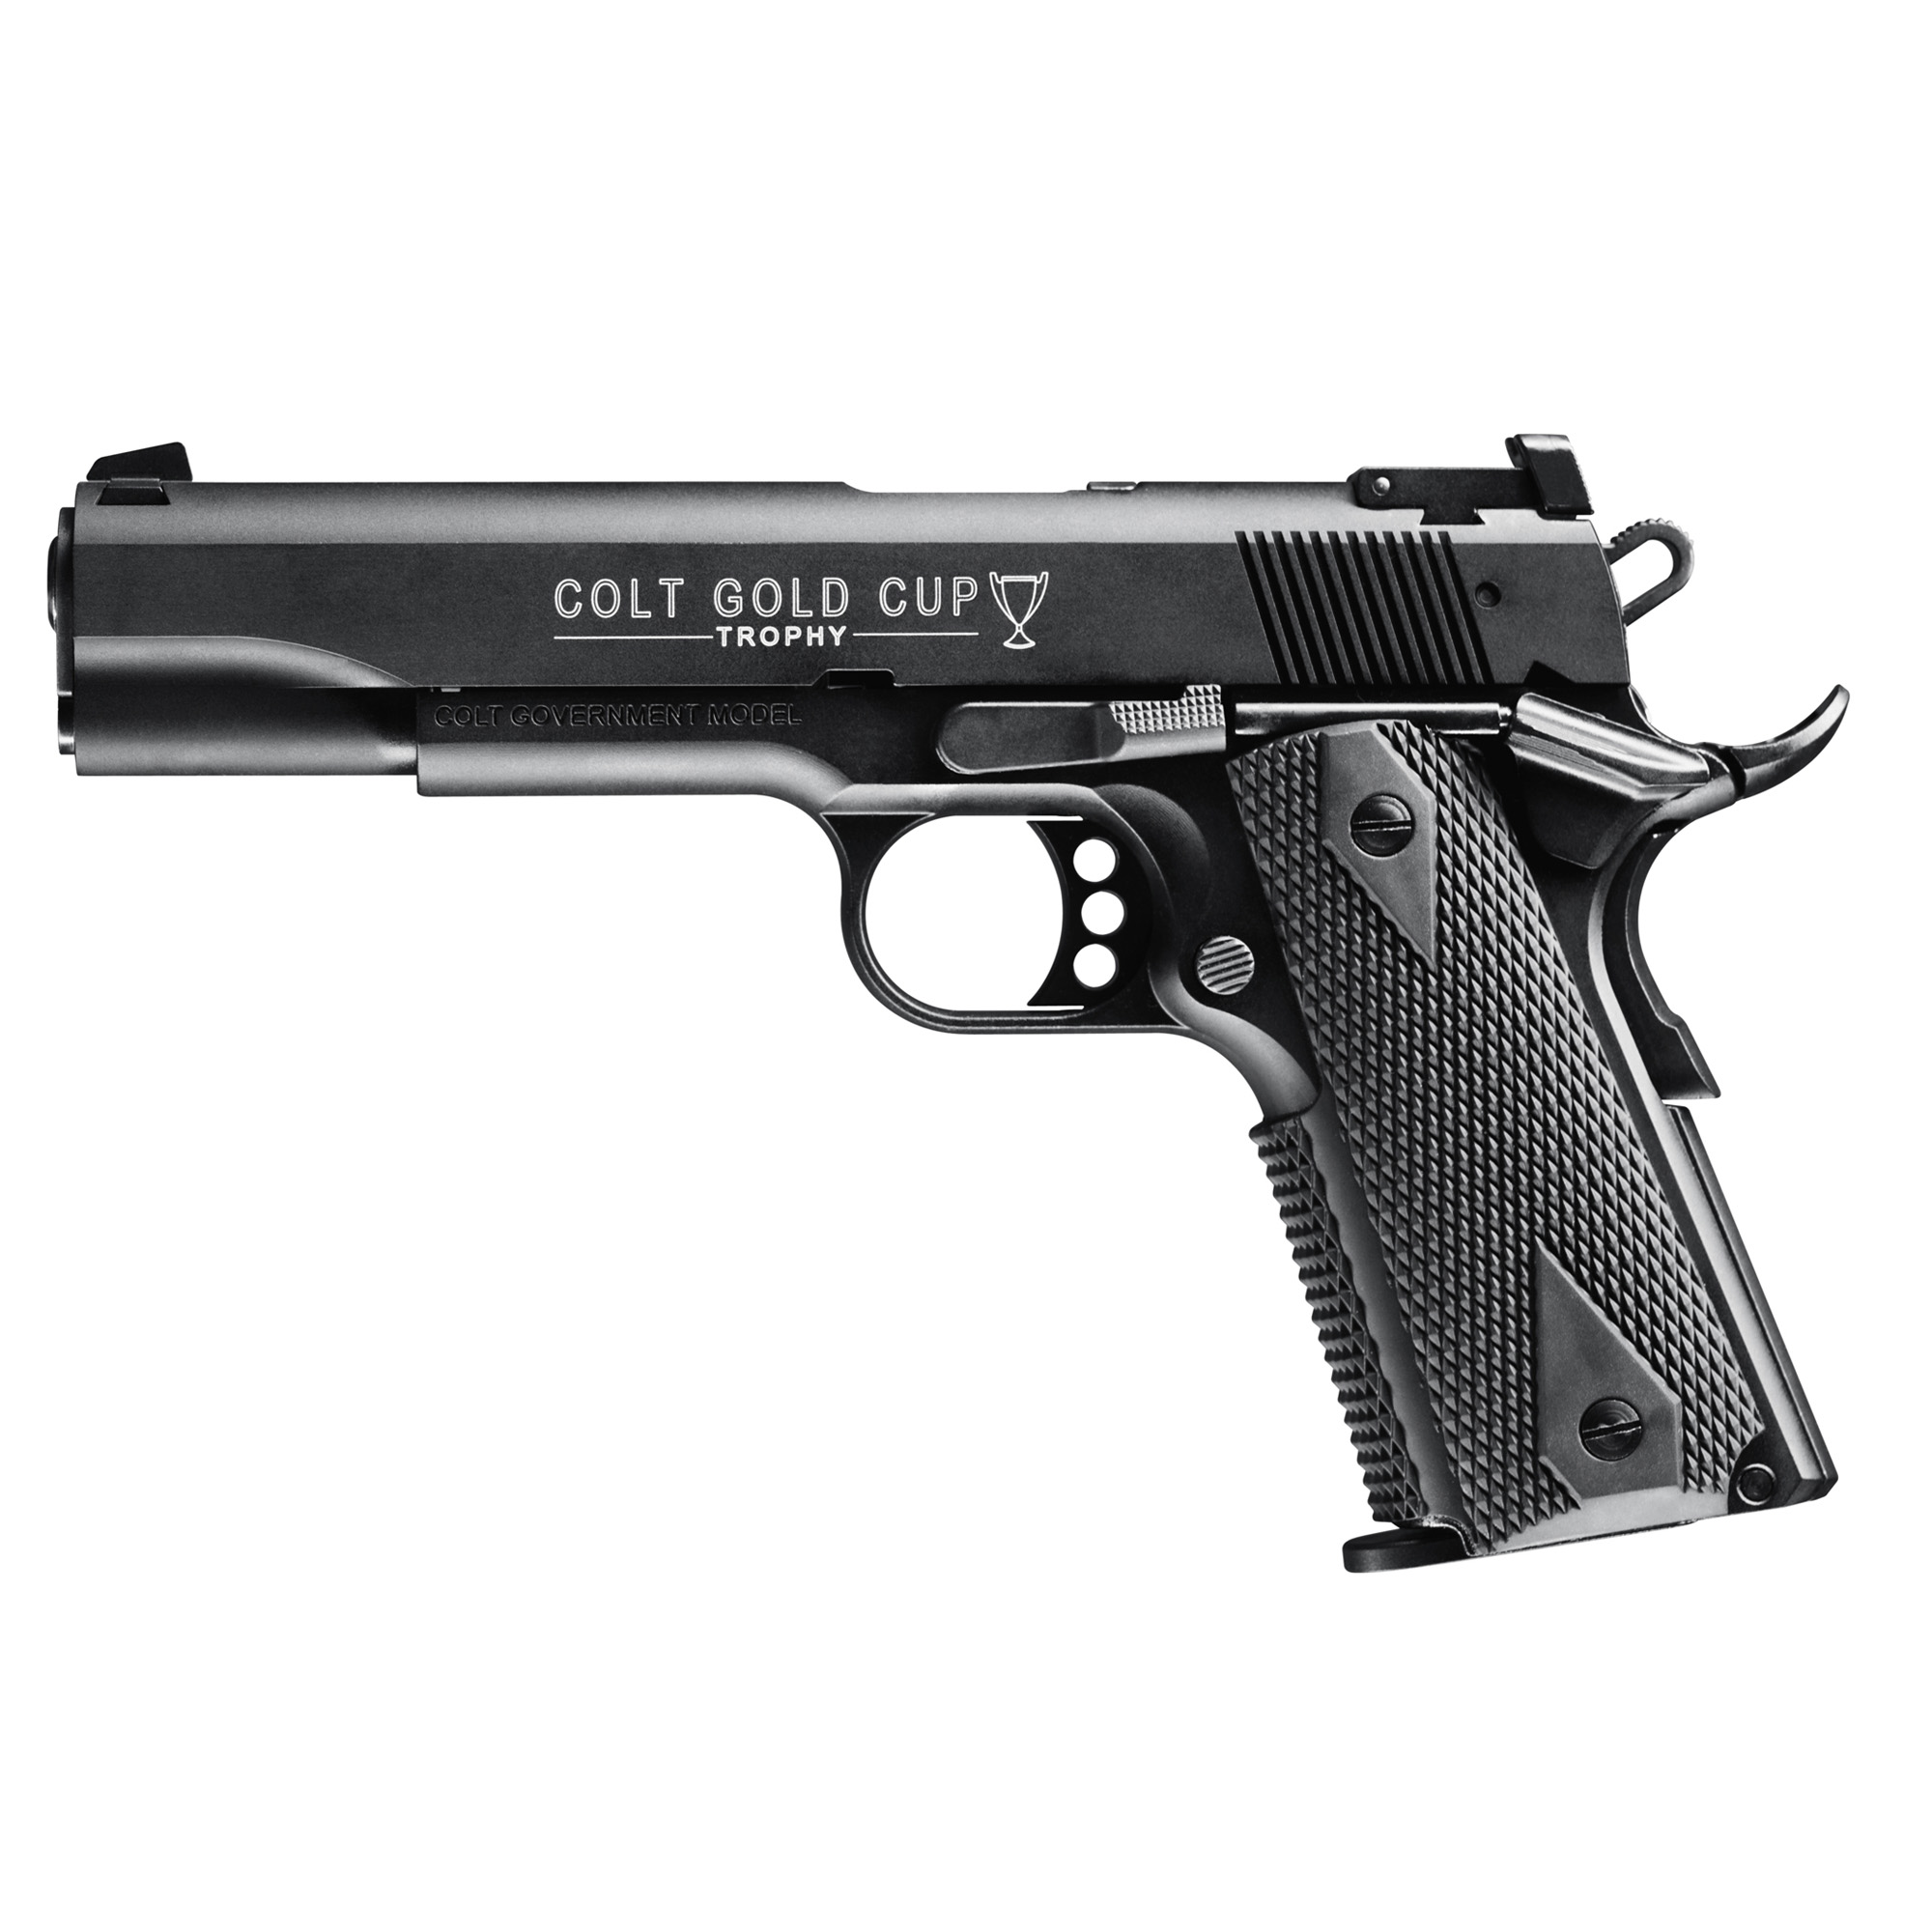 """The Colt Gold Cup is the competition configuration of the legendary Colt 1911 handgun. It includes a beavertail grip safety"""" target sights"""" skeleton trigger and other competition enhancements. The Colt 1911 A1 Gold Cup Semi-Automatic Pistol in .22 L.R. is manufactured exclusively by Walther under license from Colt. It is the only genuine Colt tactical rimfire replica available in the world."""